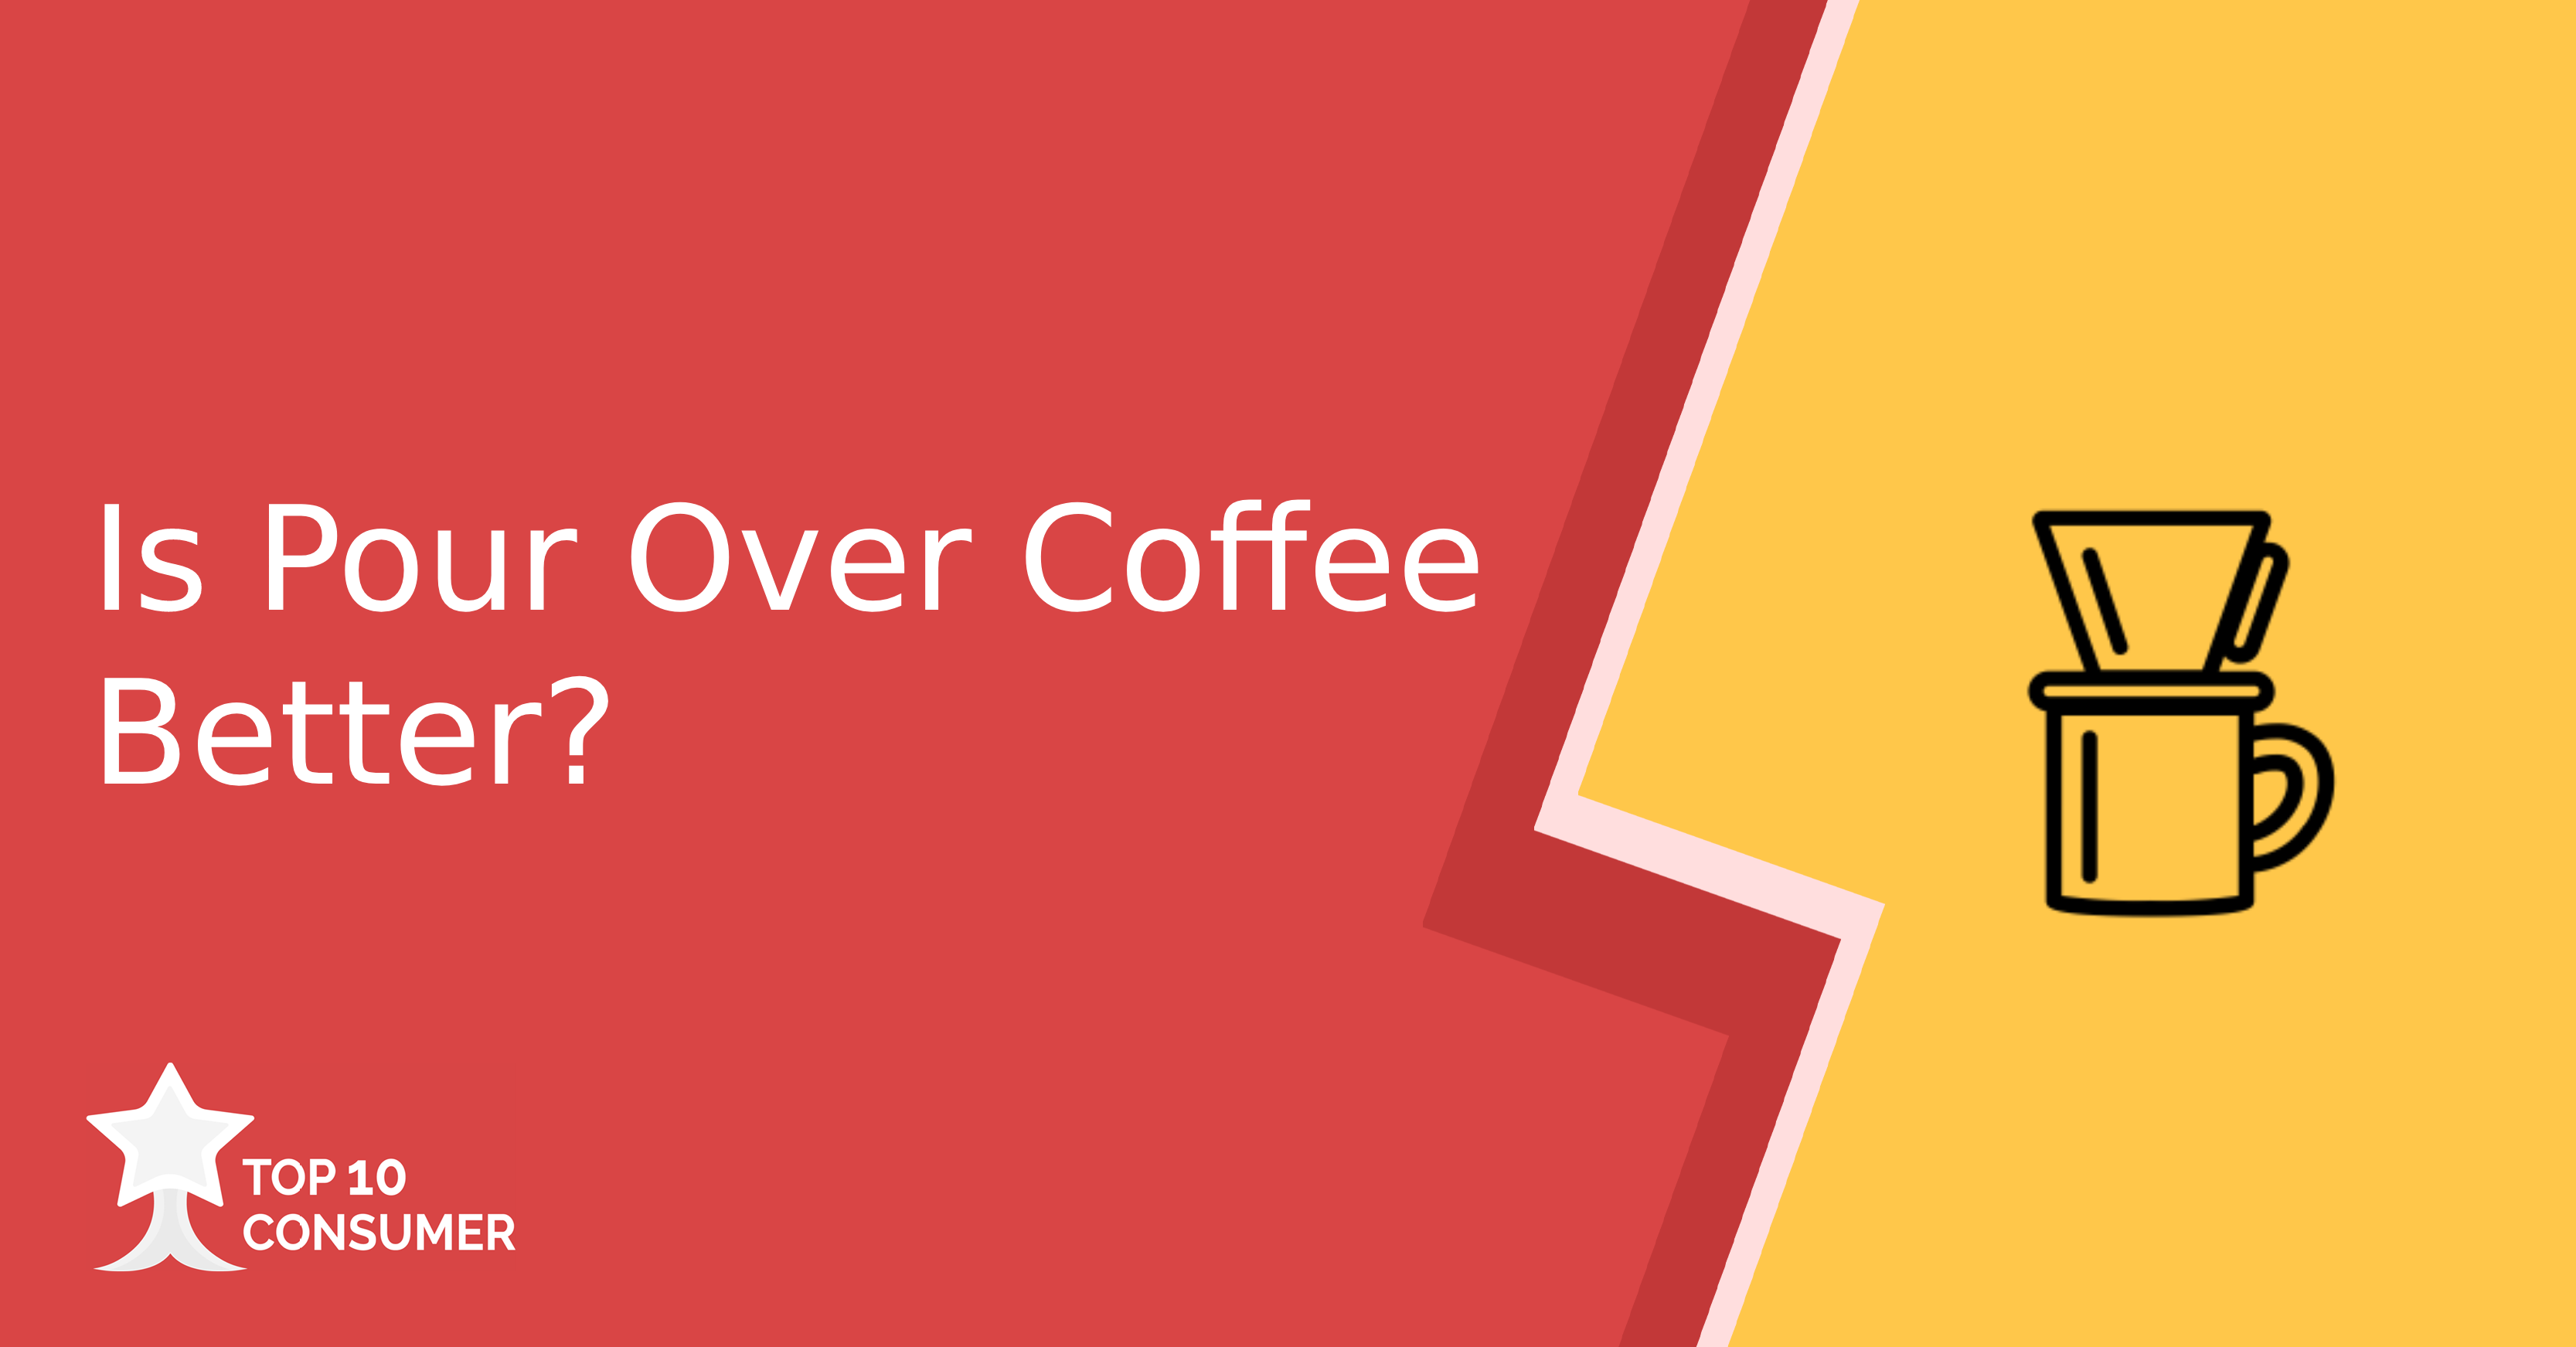 Is Pour Over Coffee Better?